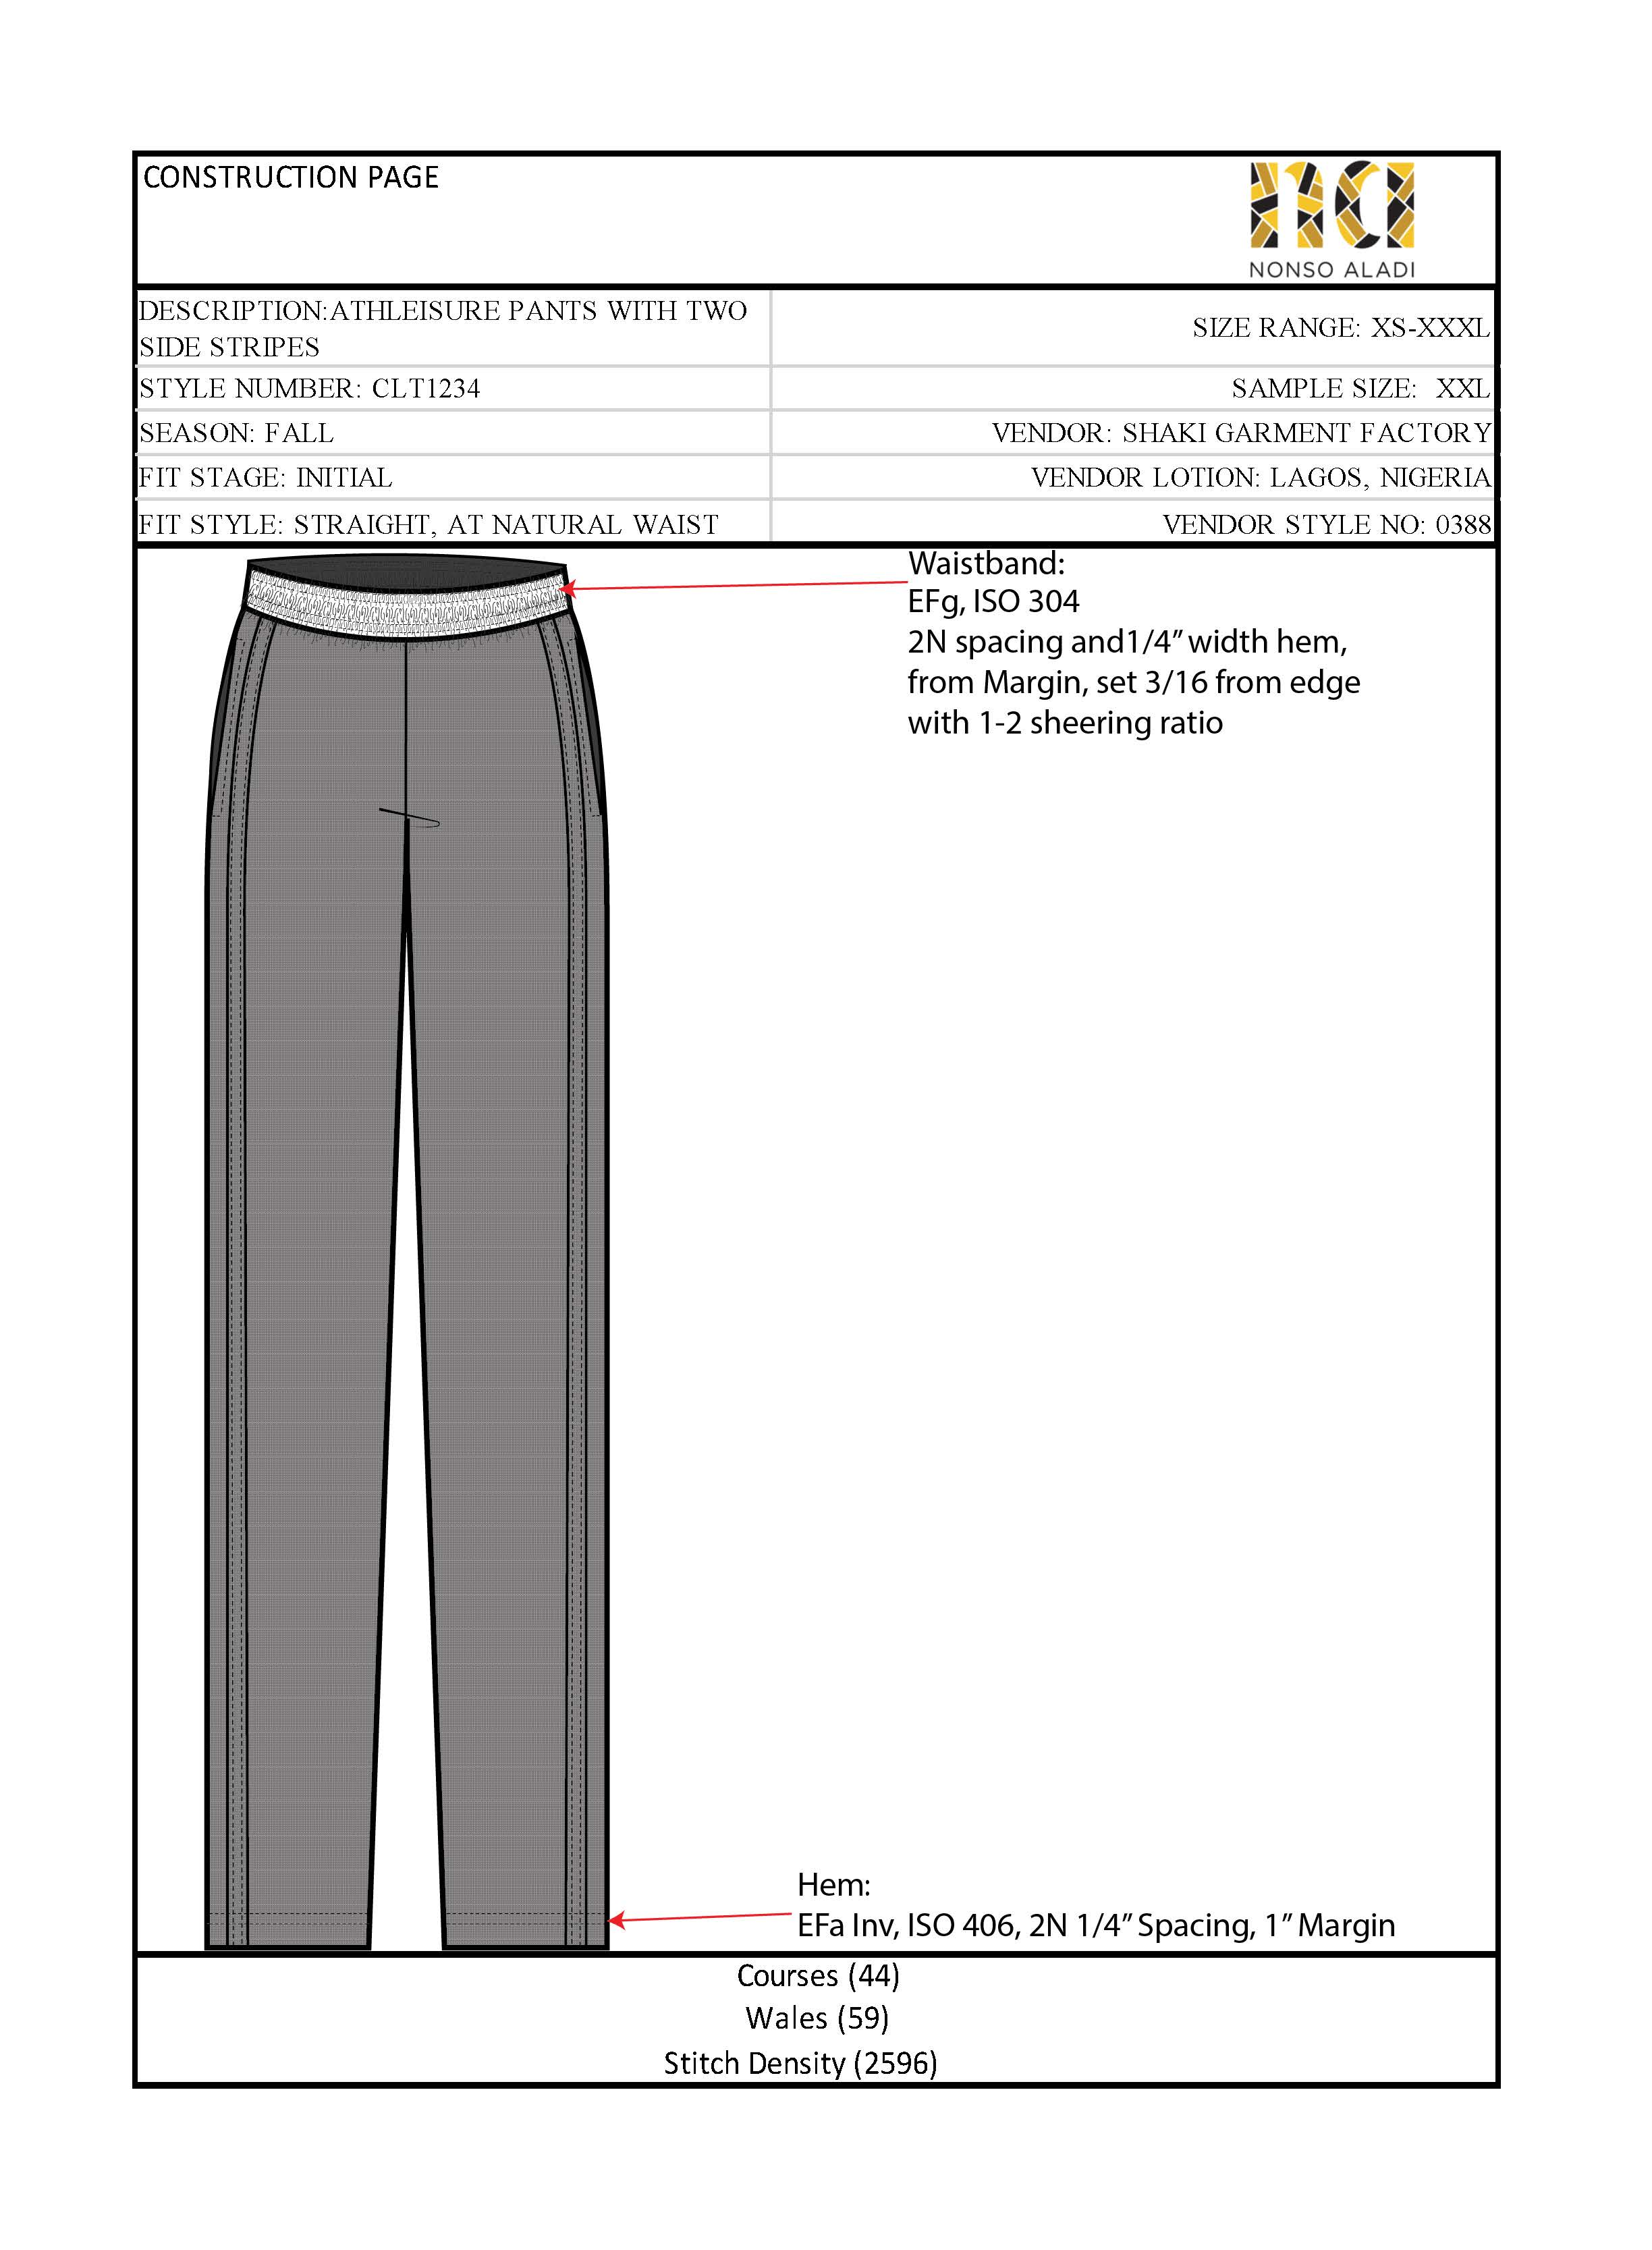 Sweater Project meanswear_Page_13.jpg